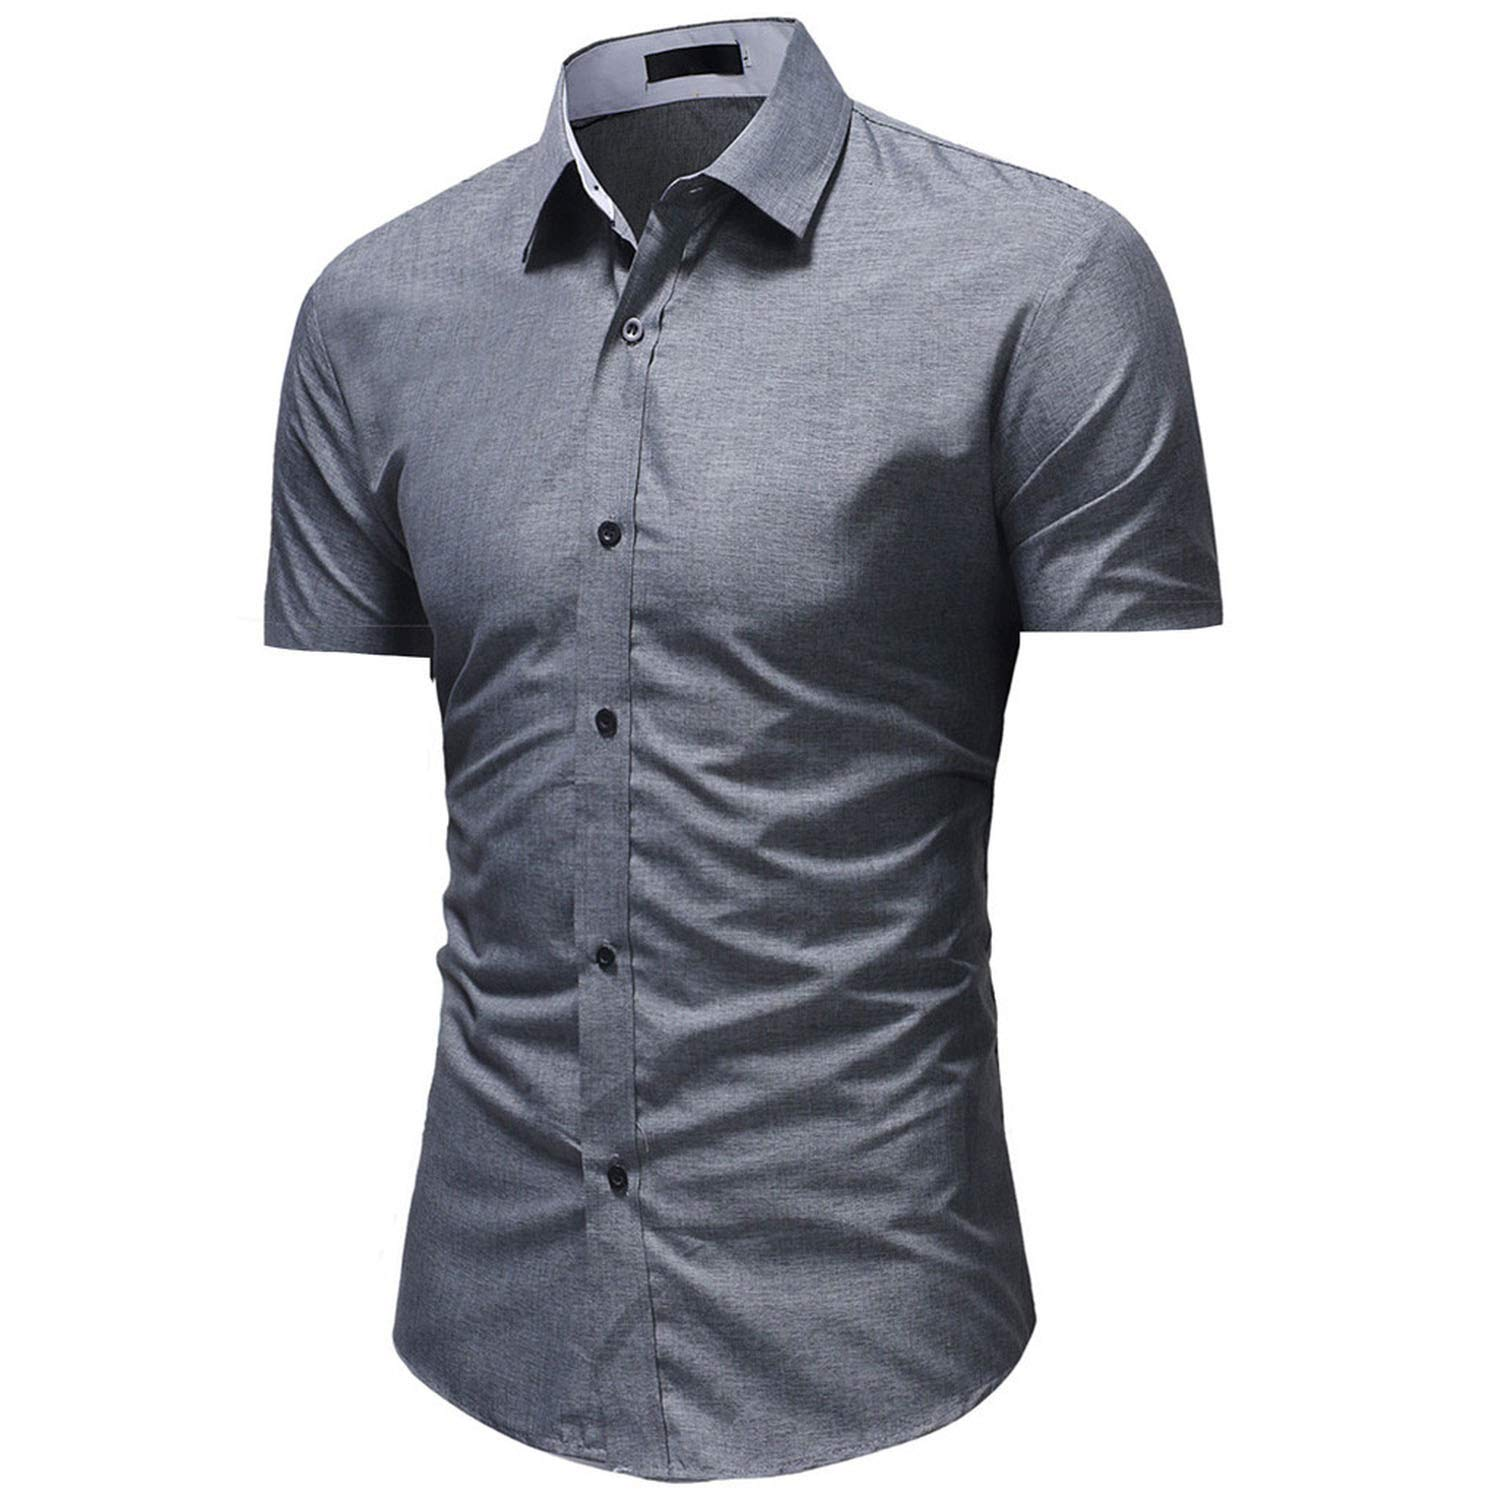 Jamais-Vu 2019 Mens Button Shirt Summer Short Sleeve Casual Button Shirt Slim Fit Shirts,Cinza,XL